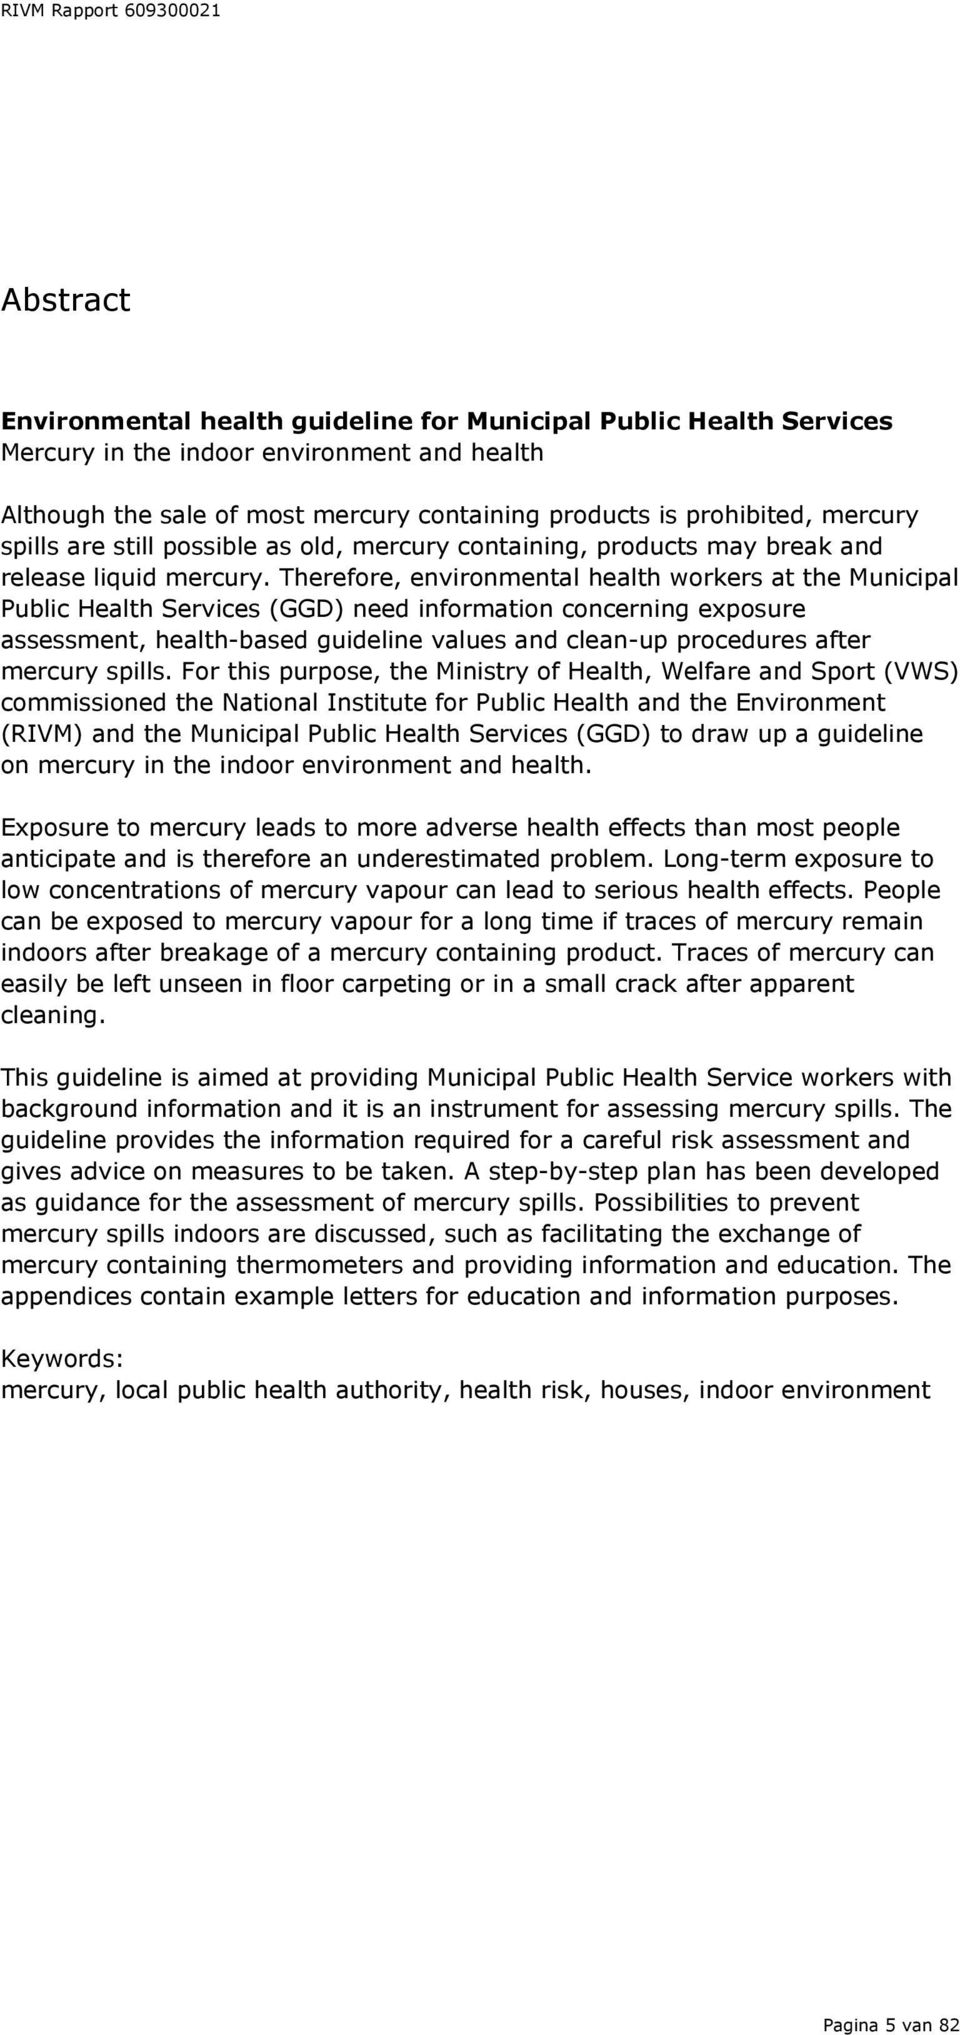 Therefore, environmental health workers at the Municipal Public Health Services (GGD) need information concerning exposure assessment, health-based guideline values and clean-up procedures after